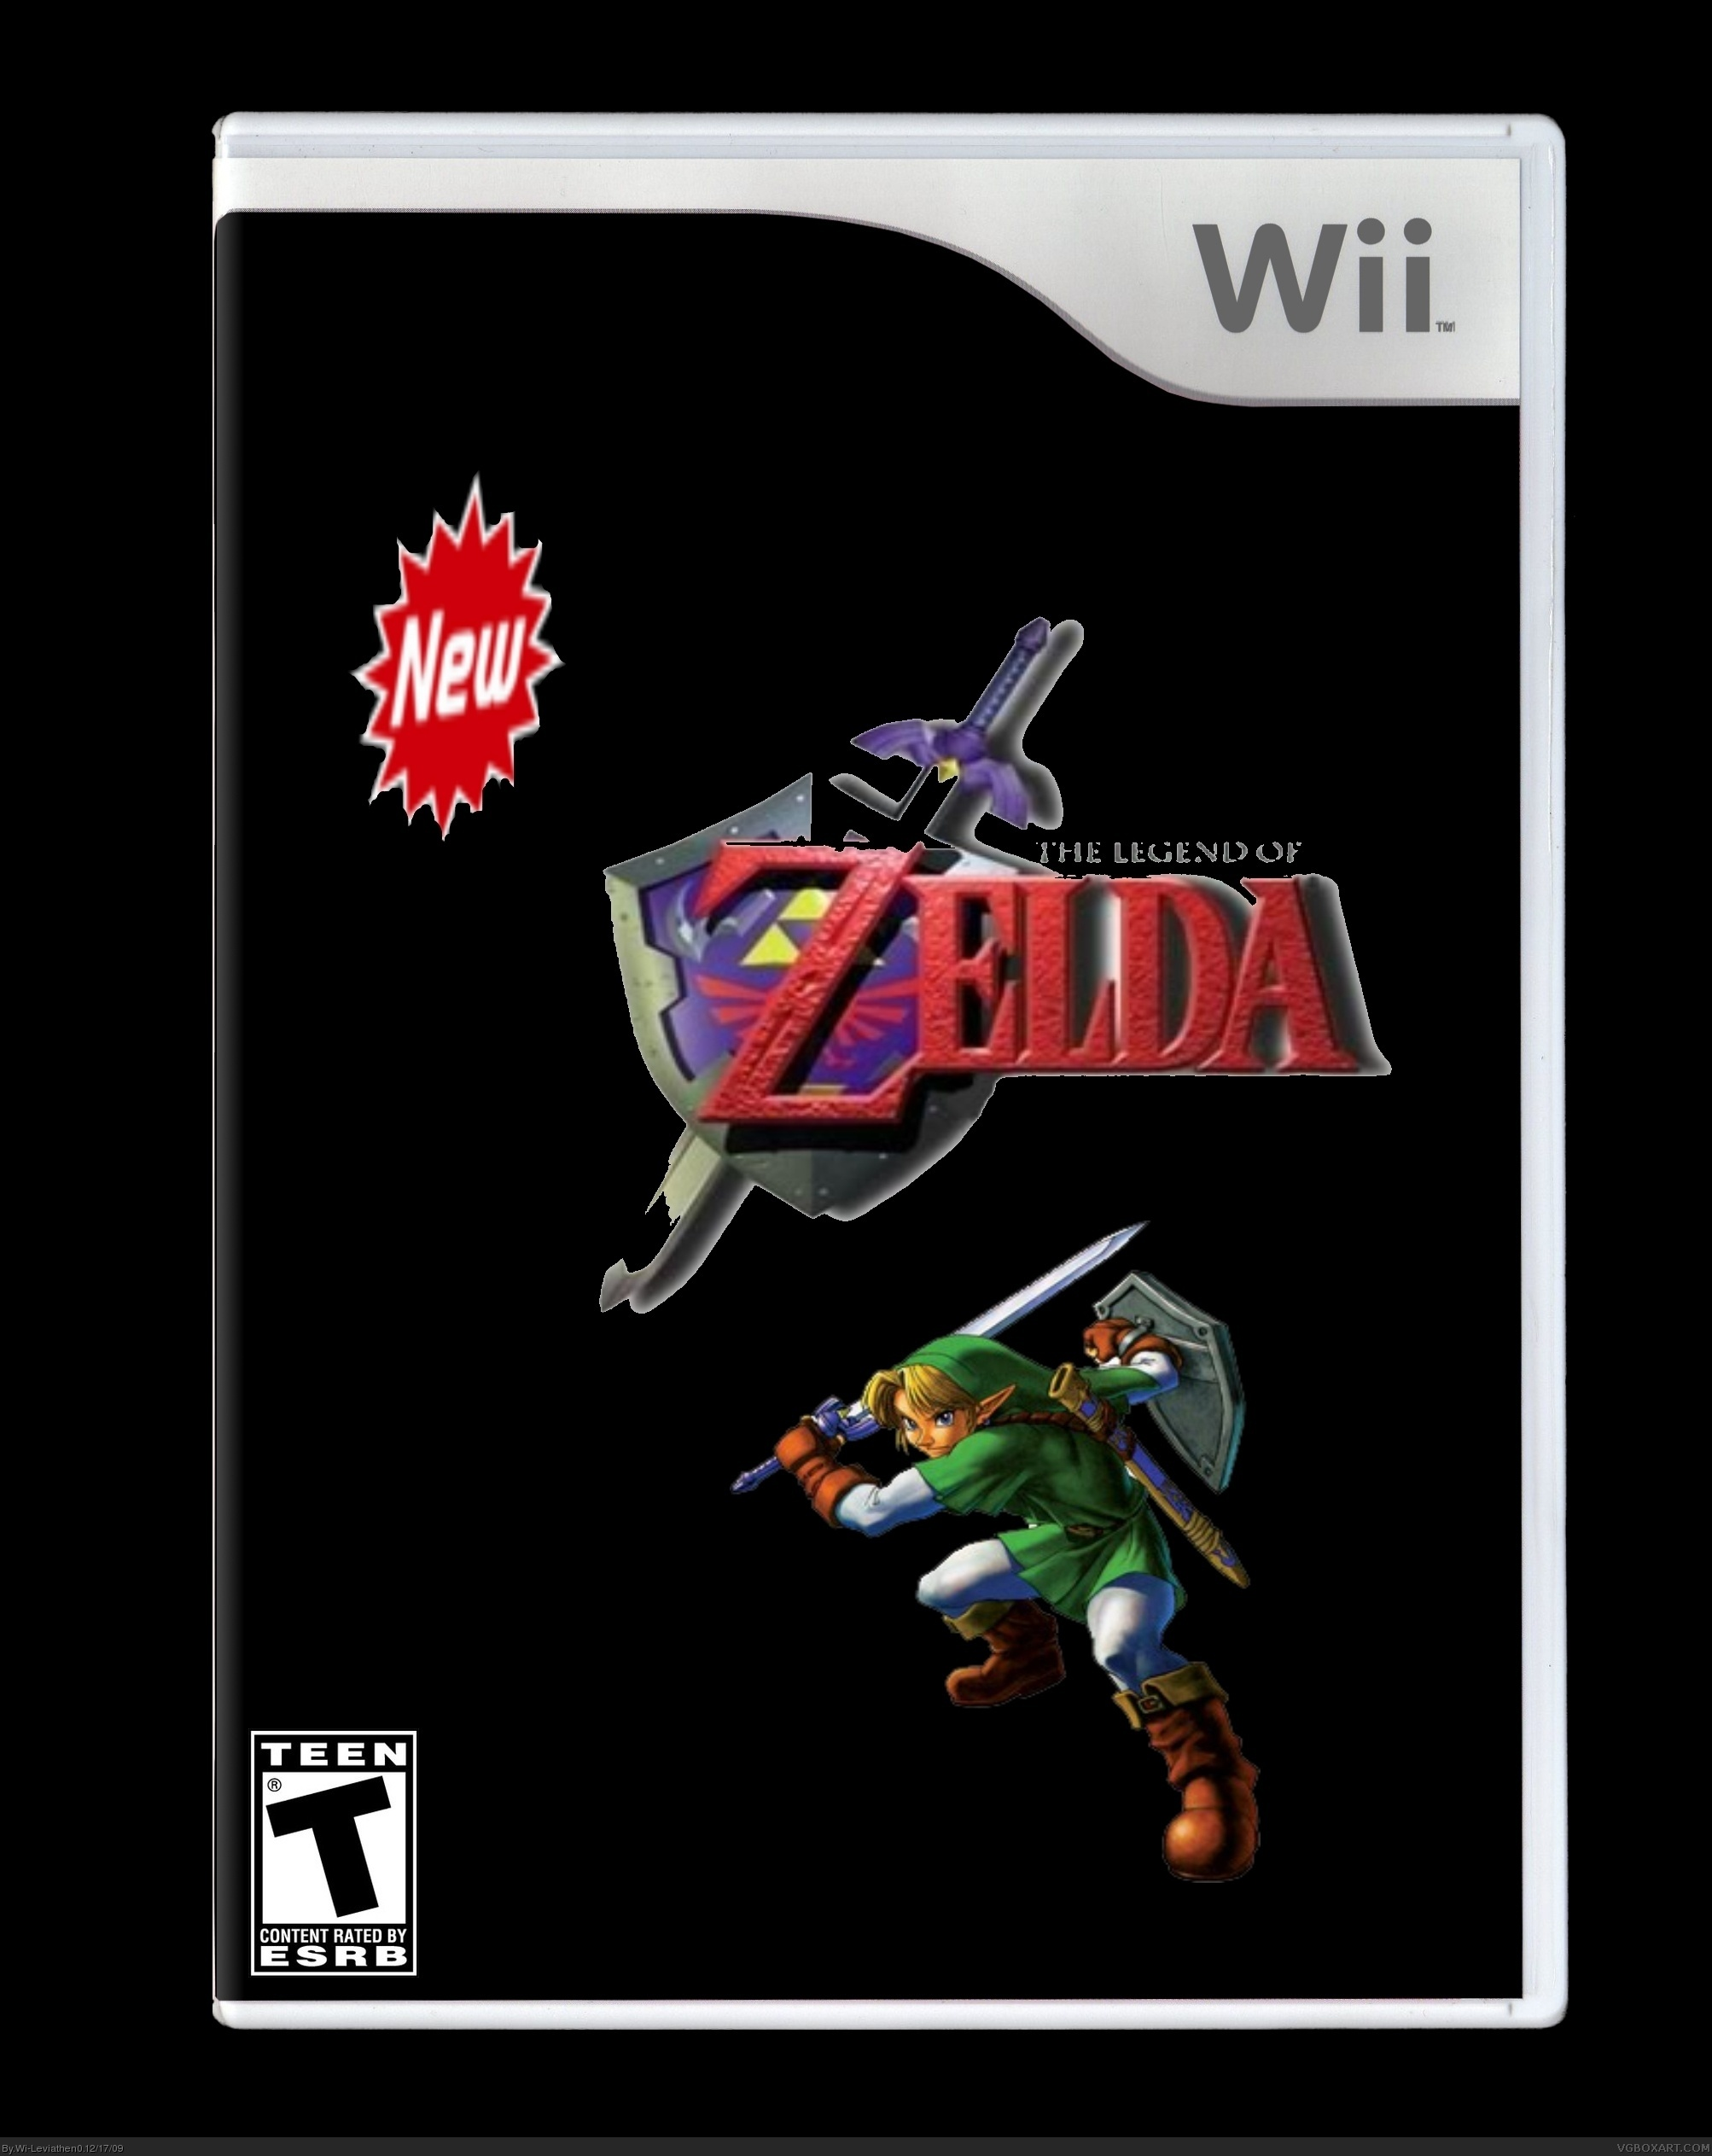 New Legend of Zelda box cover